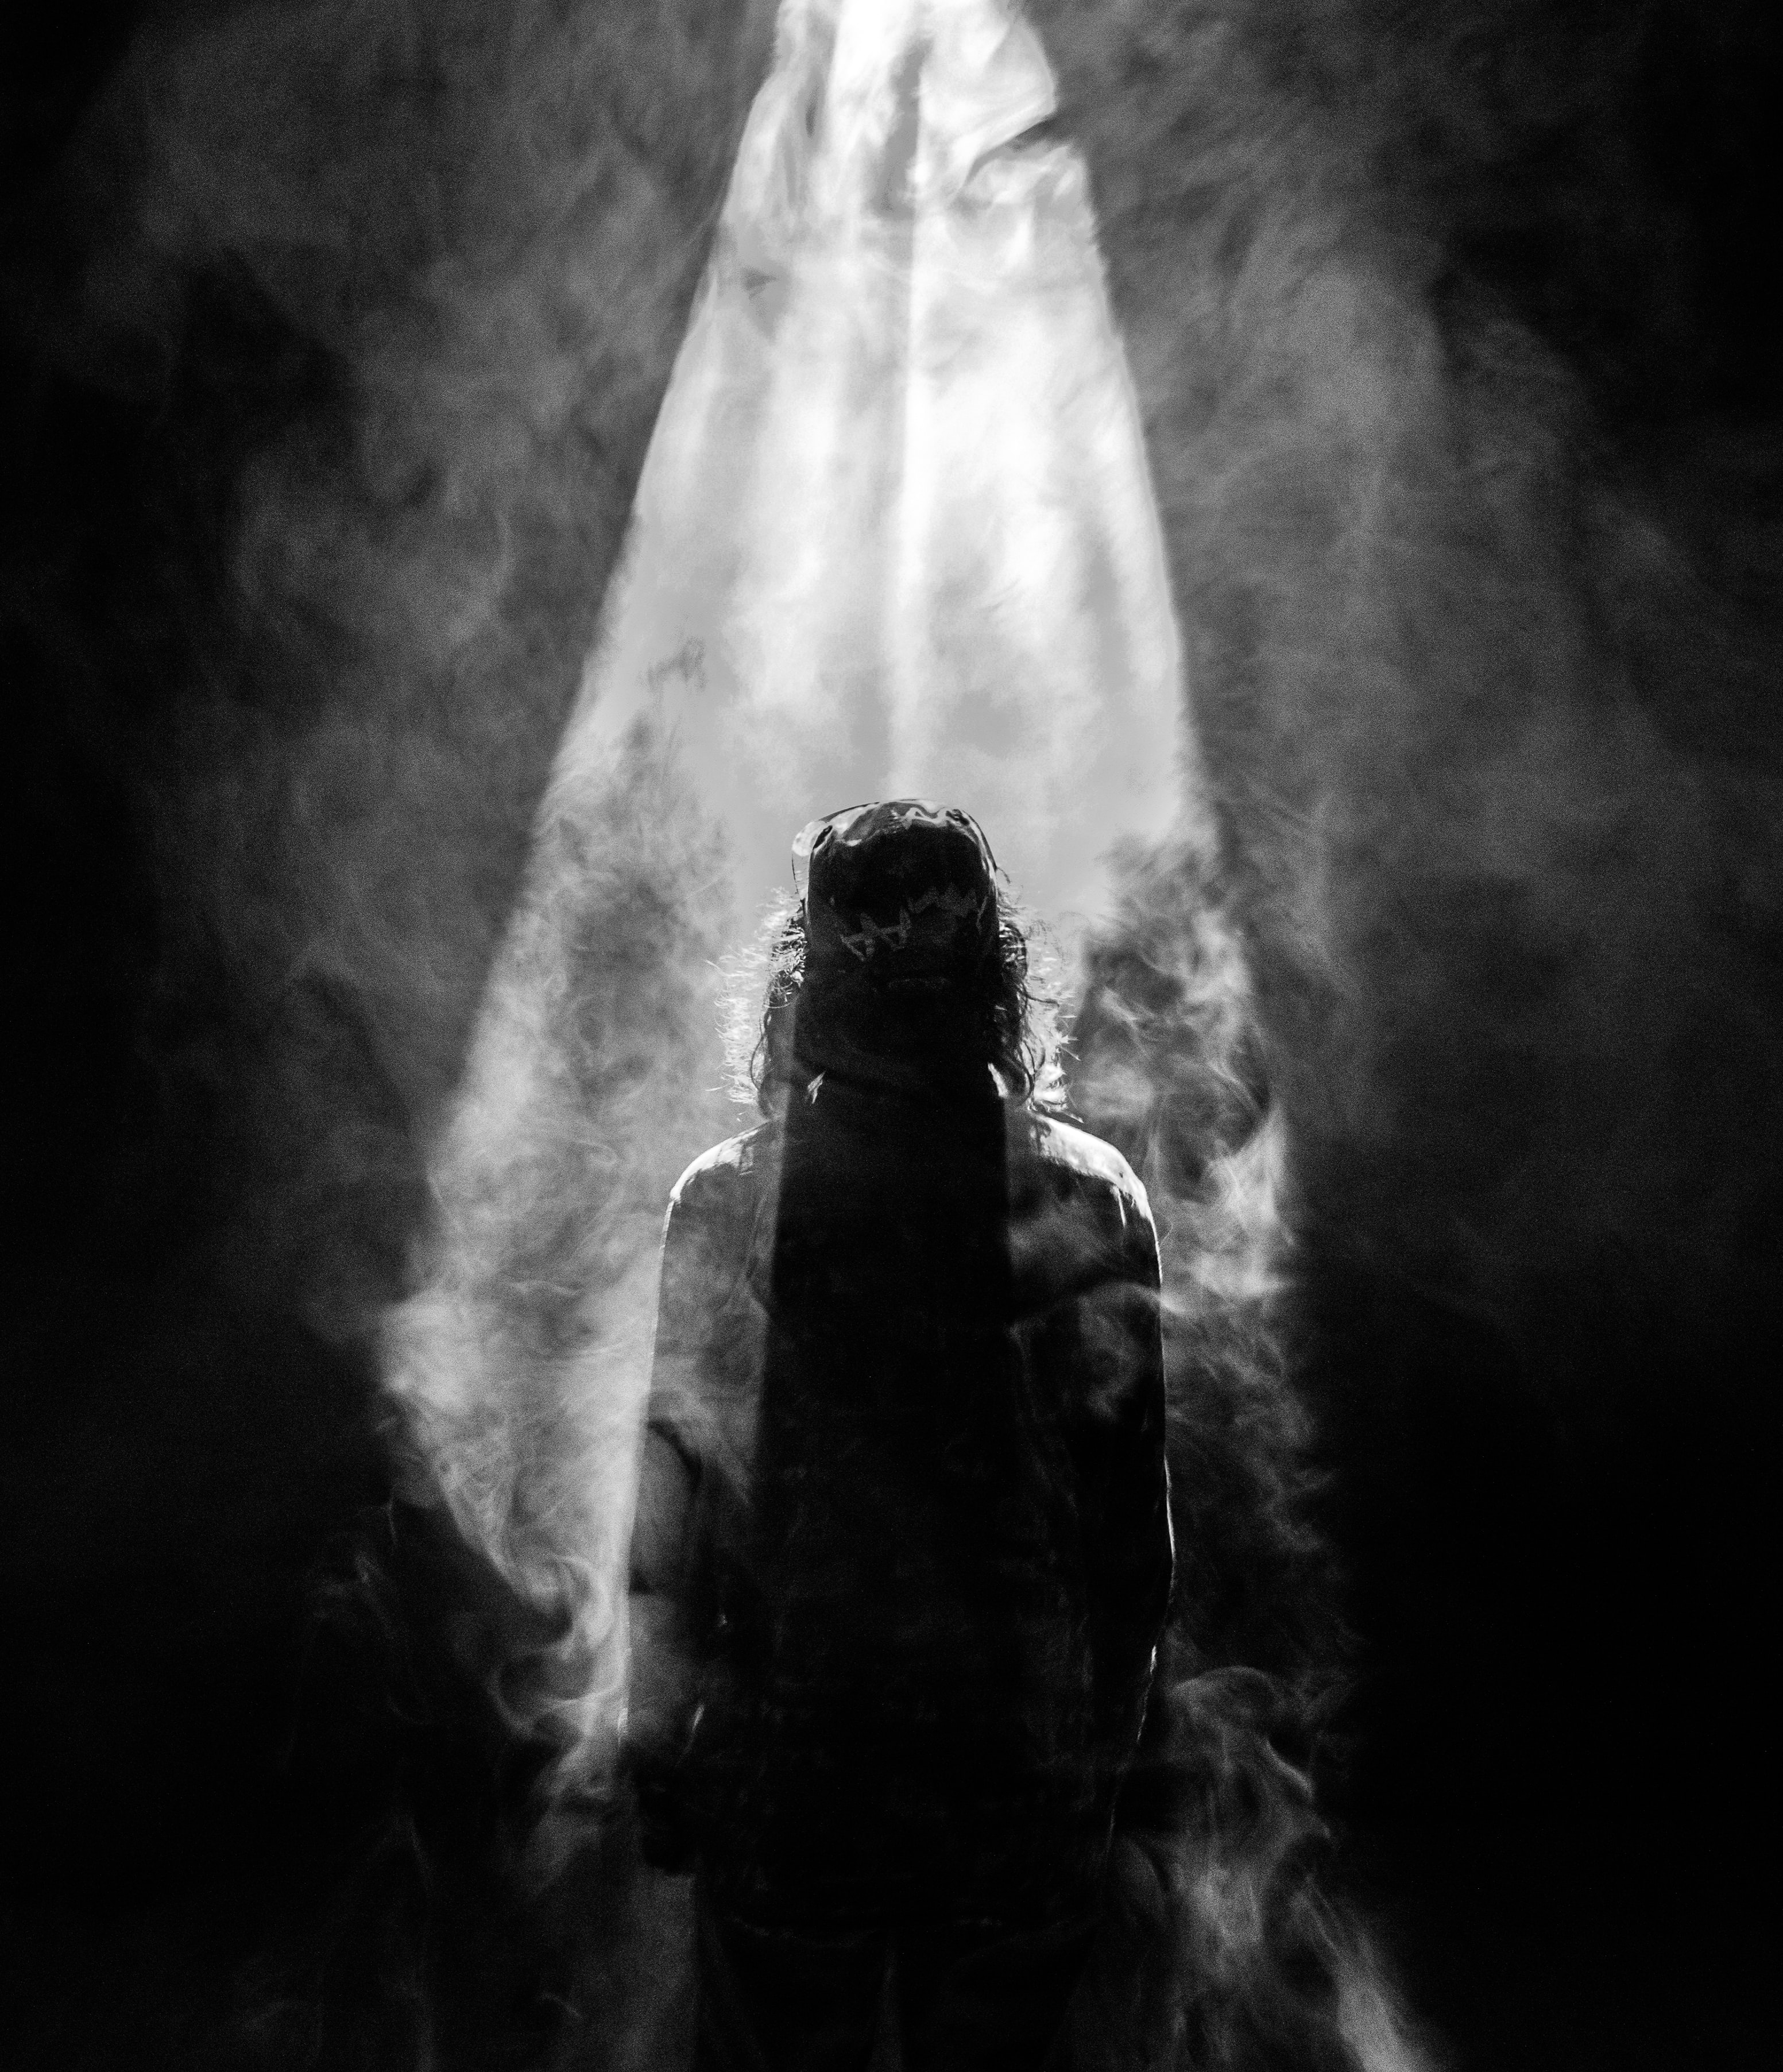 A black-and-white shot of a person's silhouette engulfed in smoke